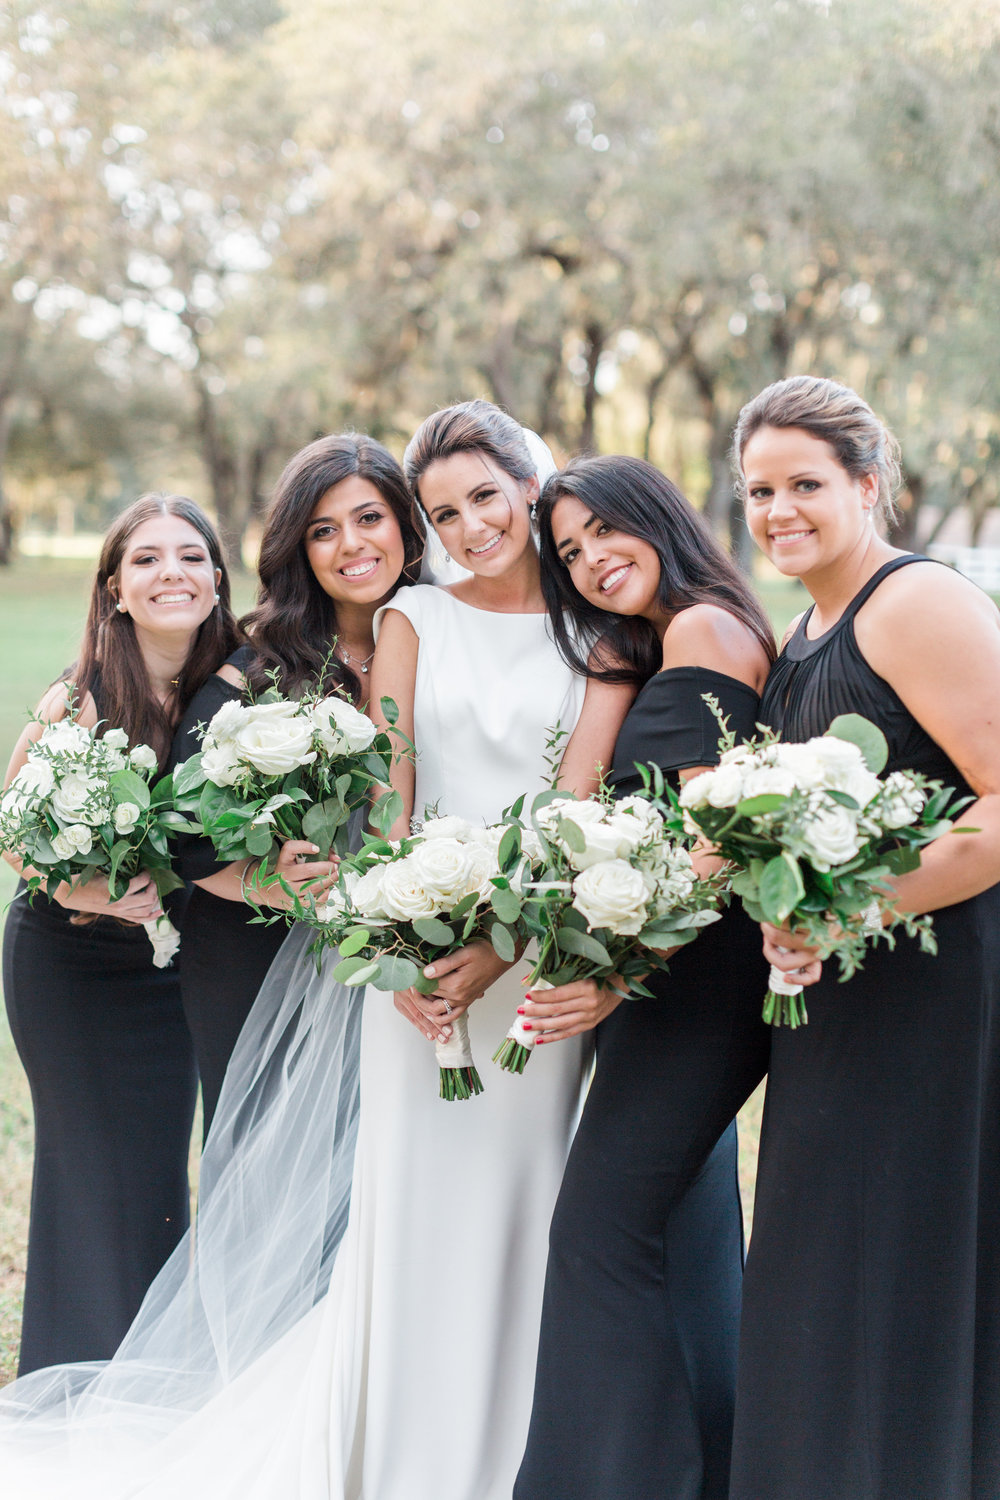 Monzy & Kenny's Wedding | Lauren Galloway Photography-534.jpg